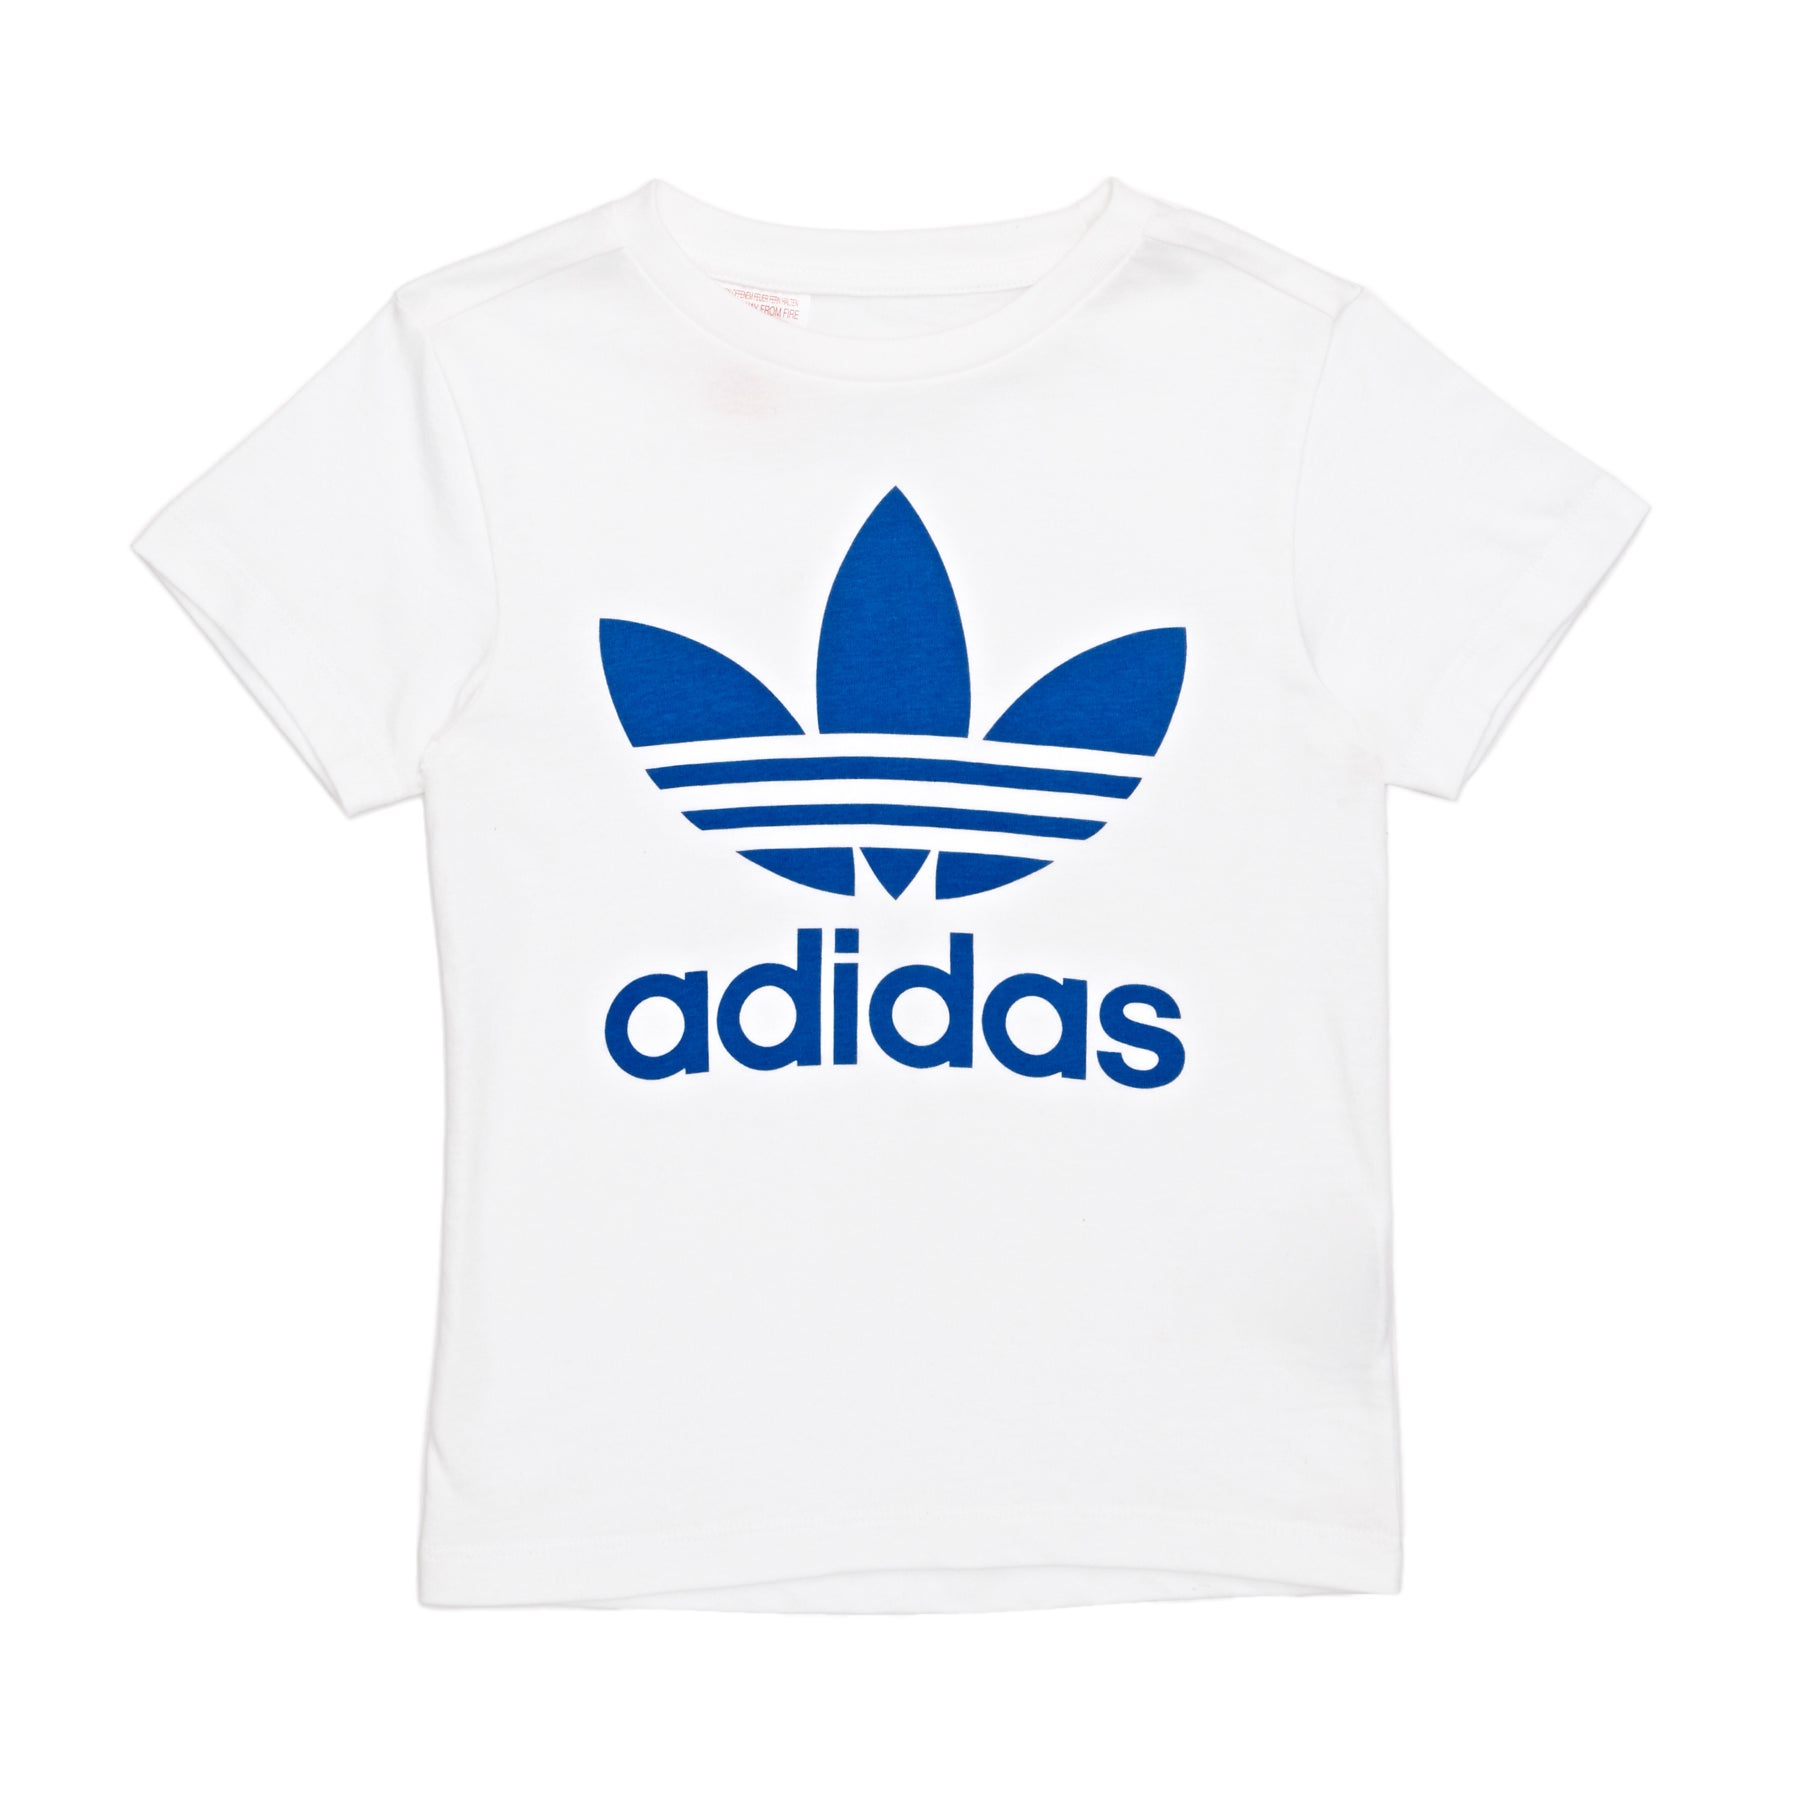 Adidas Originals Trefoil Boys Short Sleeve T-Shirt - White/blue